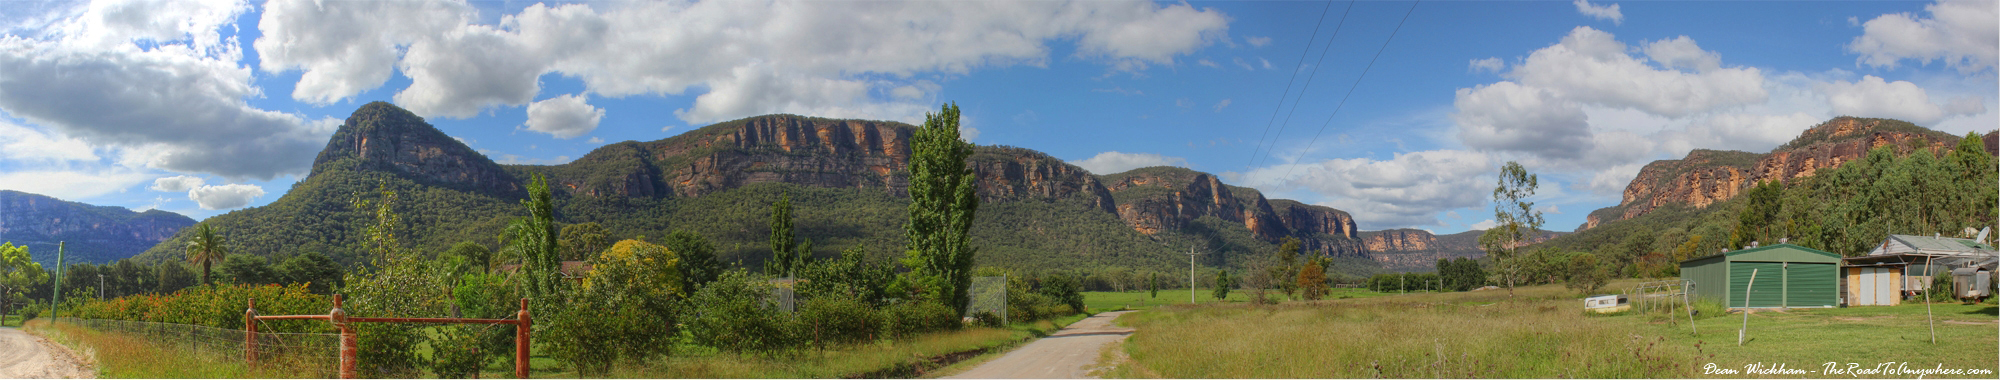 Panorama of the Sandstone Cliffs in Glen Davis, Australia